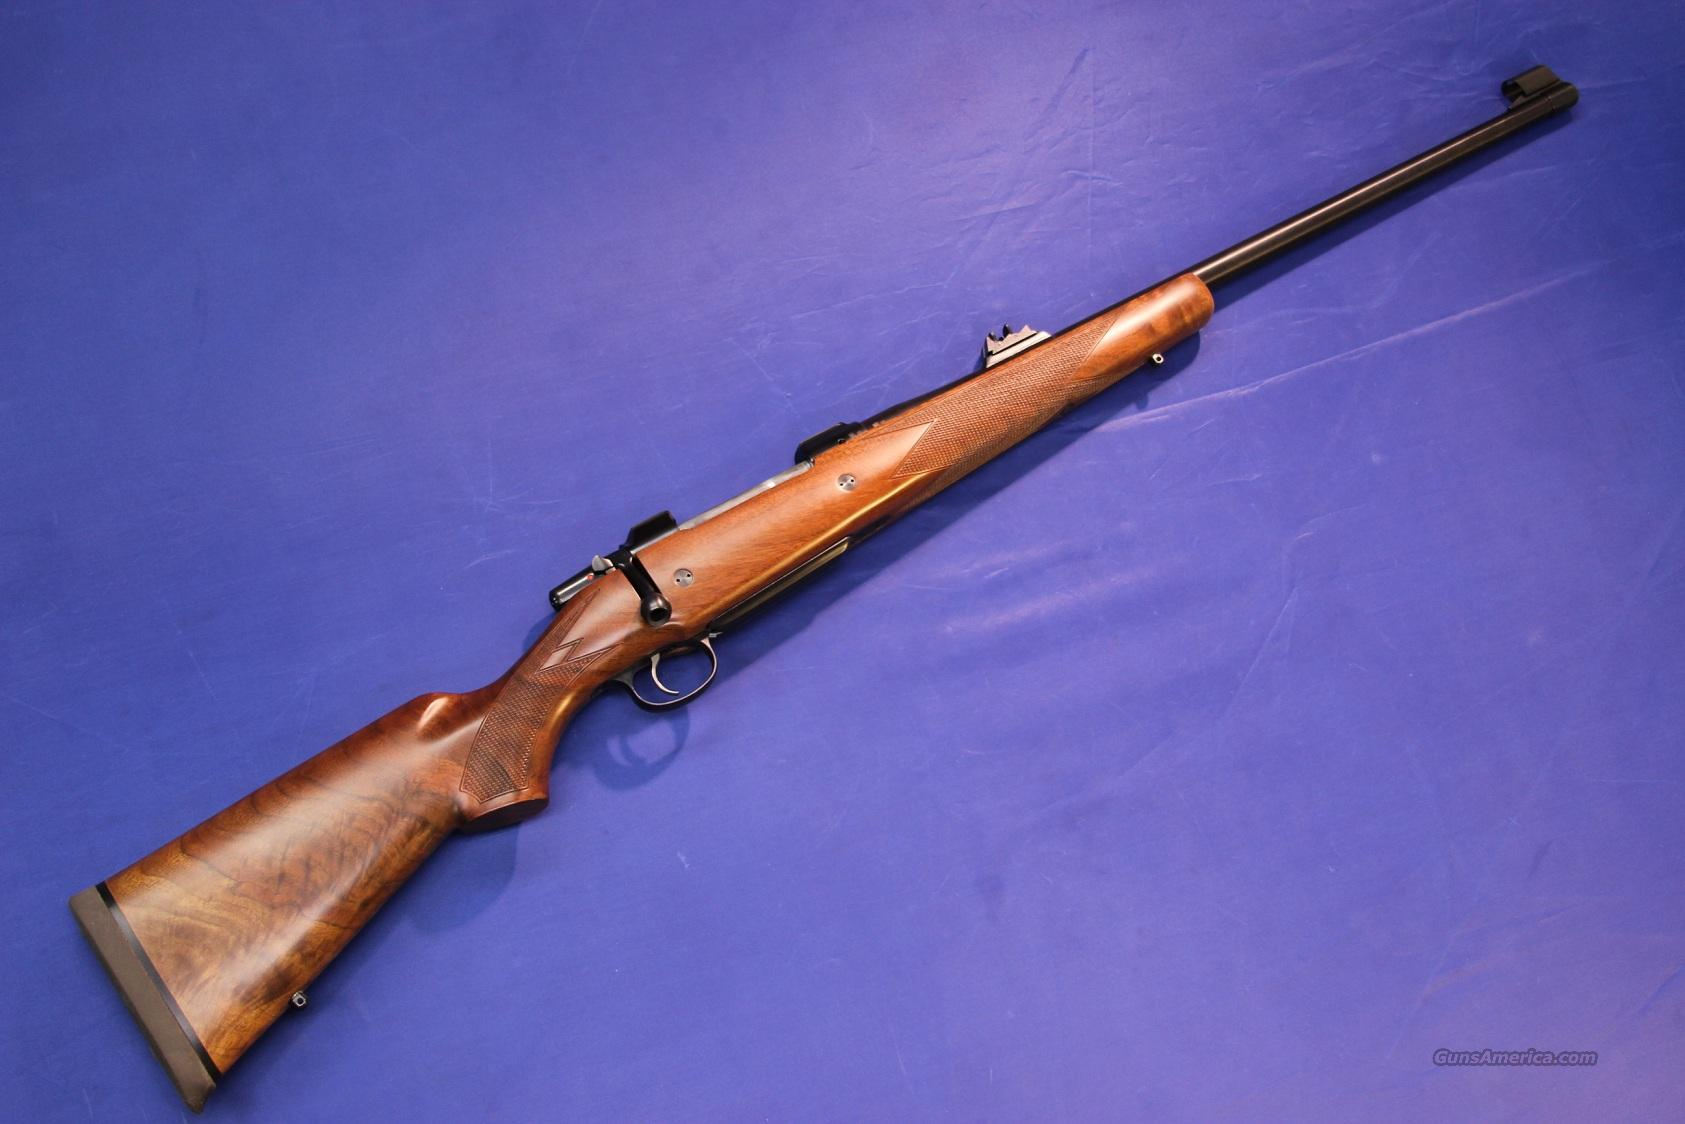 ****SOLD**** CZ 550 AMERICAN FANCY .416 RIGBY SAFARI CLASSIC - CLEARANCE!!  Guns > Rifles > CZ Rifles